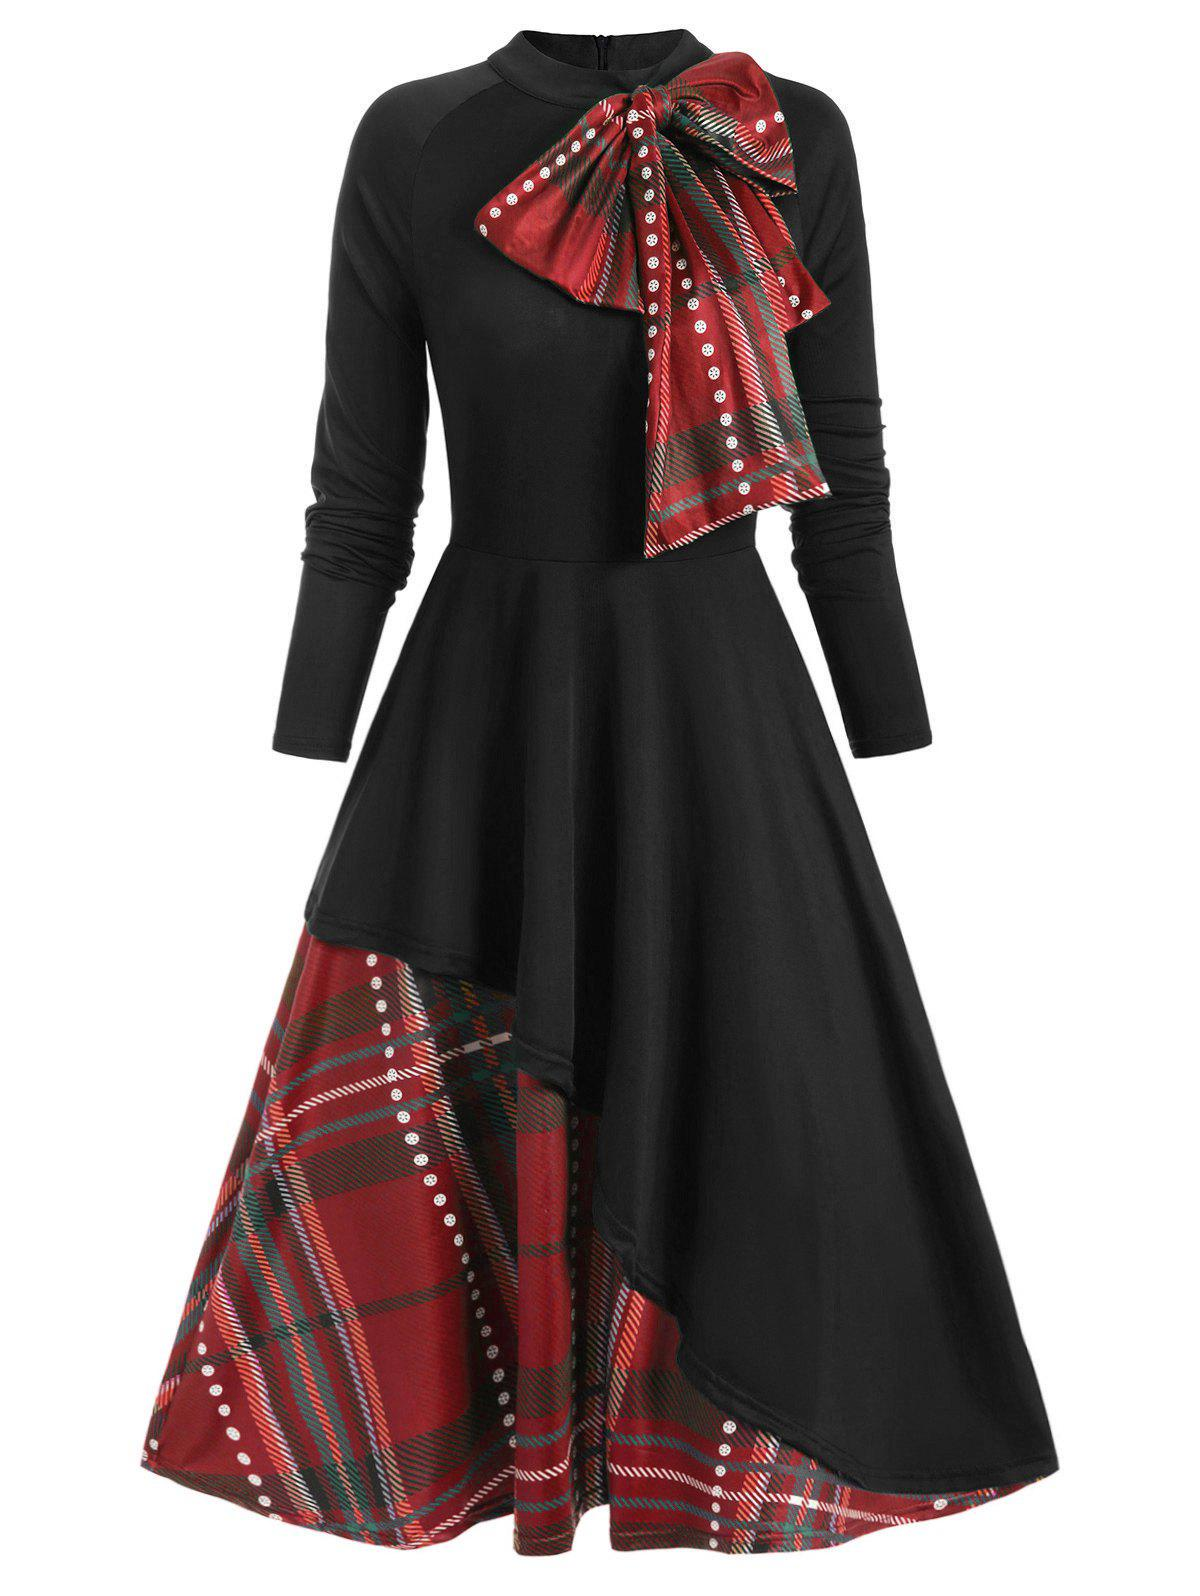 Plaid Contrast Bowknot Long Sleeves Overlay Dress - multicolor L